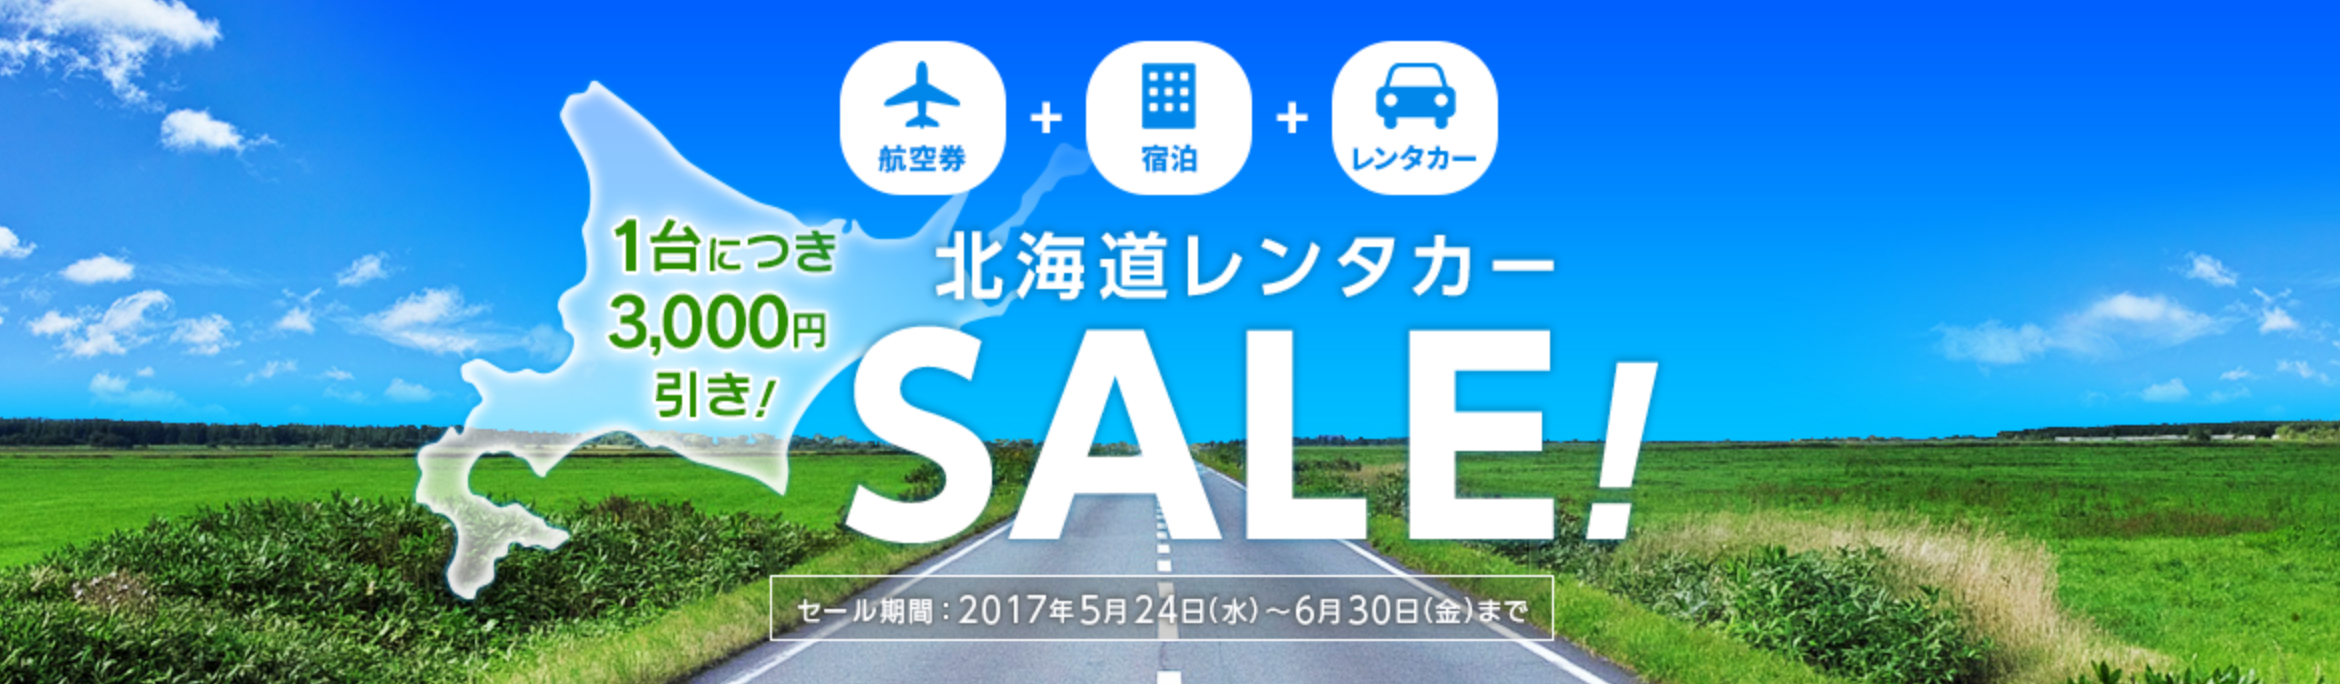 airdosale170526.png